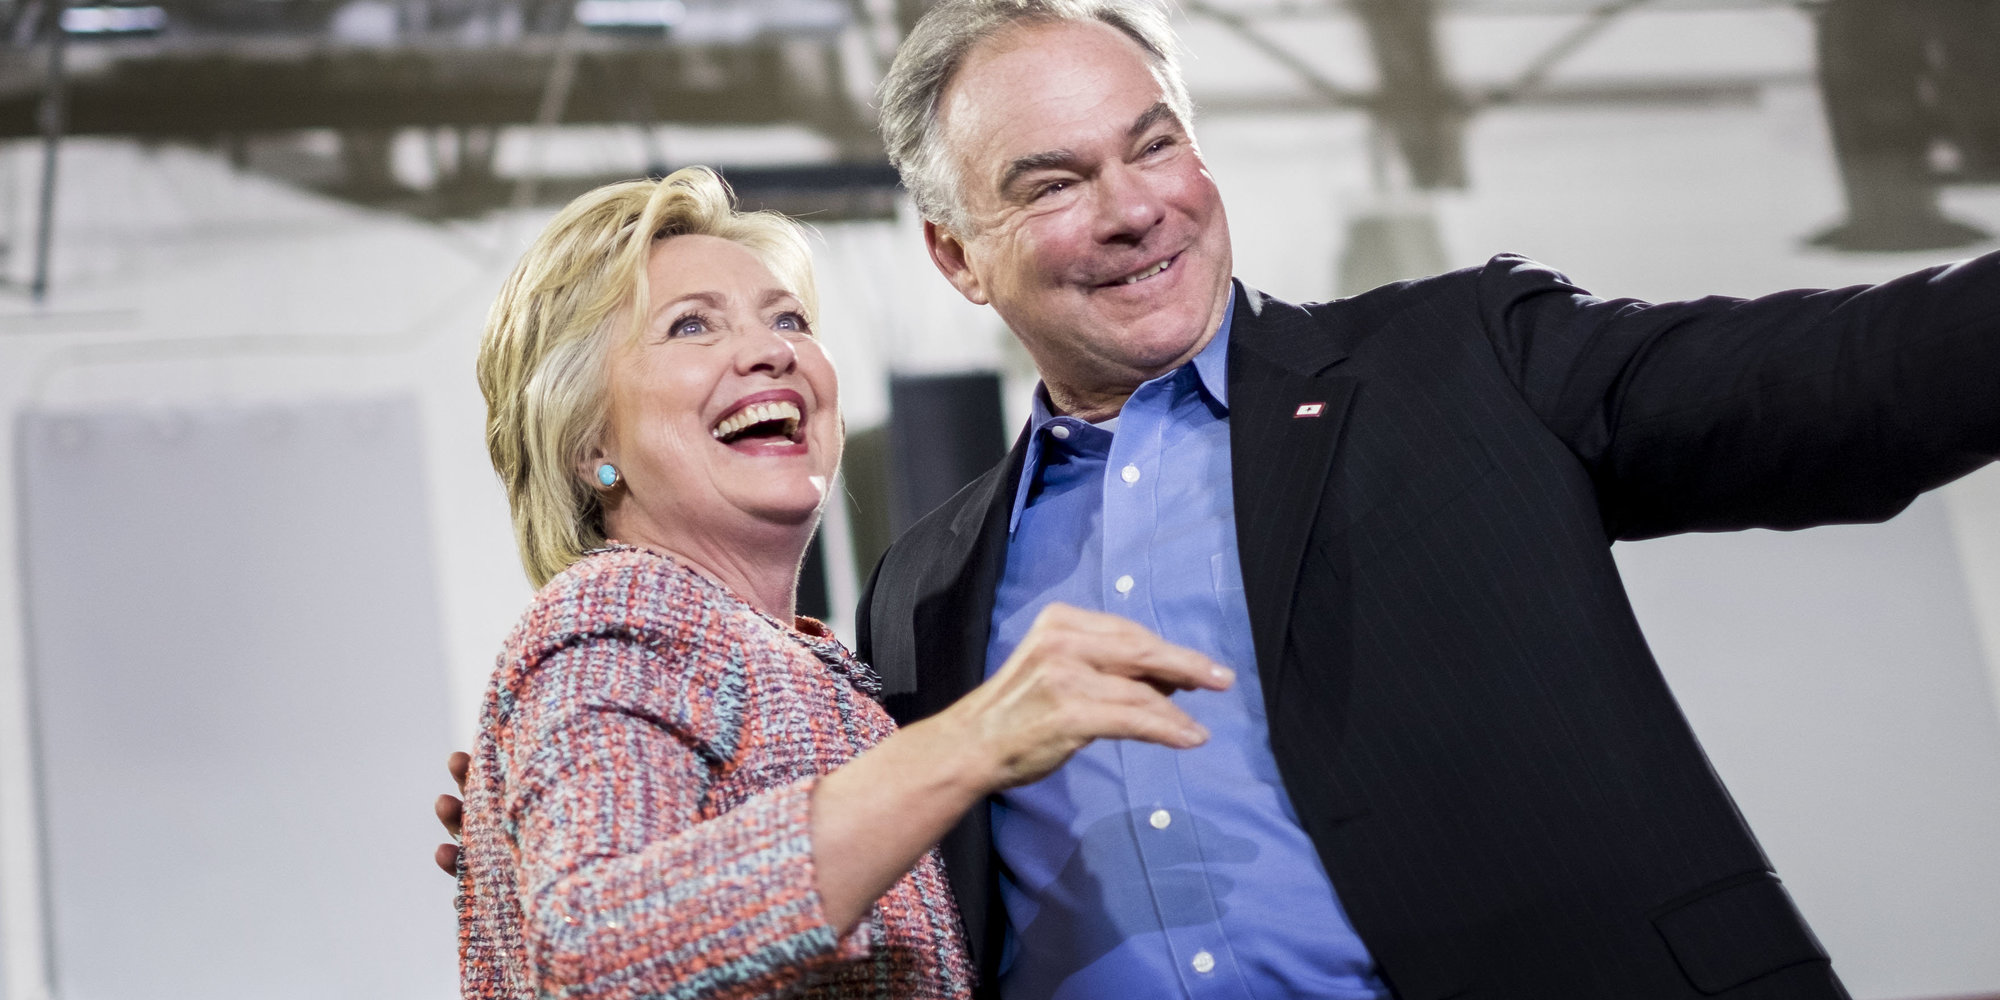 Tim Kaine Calls To Deregulate Banks As He Campaigns To Be Clinton's VP